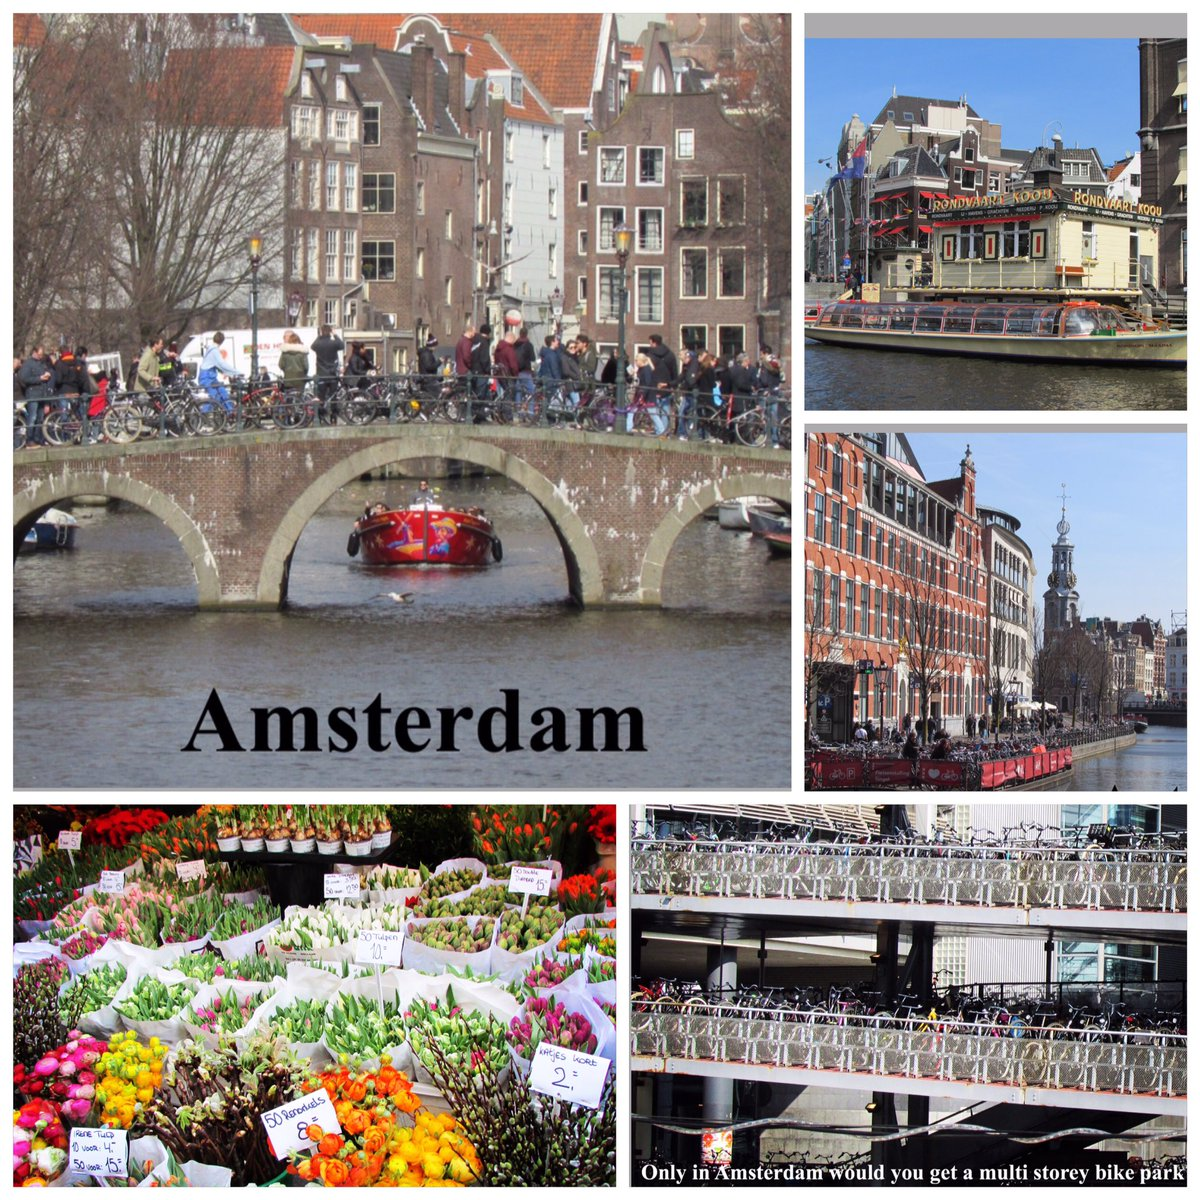 RT @Lynne_Jean  Fancy seeing Amsterdam - you can see a lot of it in a dayhttp://lynnemorley.blogspot.com/2016/04/amsterdam-in-day.html… … #amsterdam #canals #visitamsterdam pic.twitter.com/nrjlLMCe8C